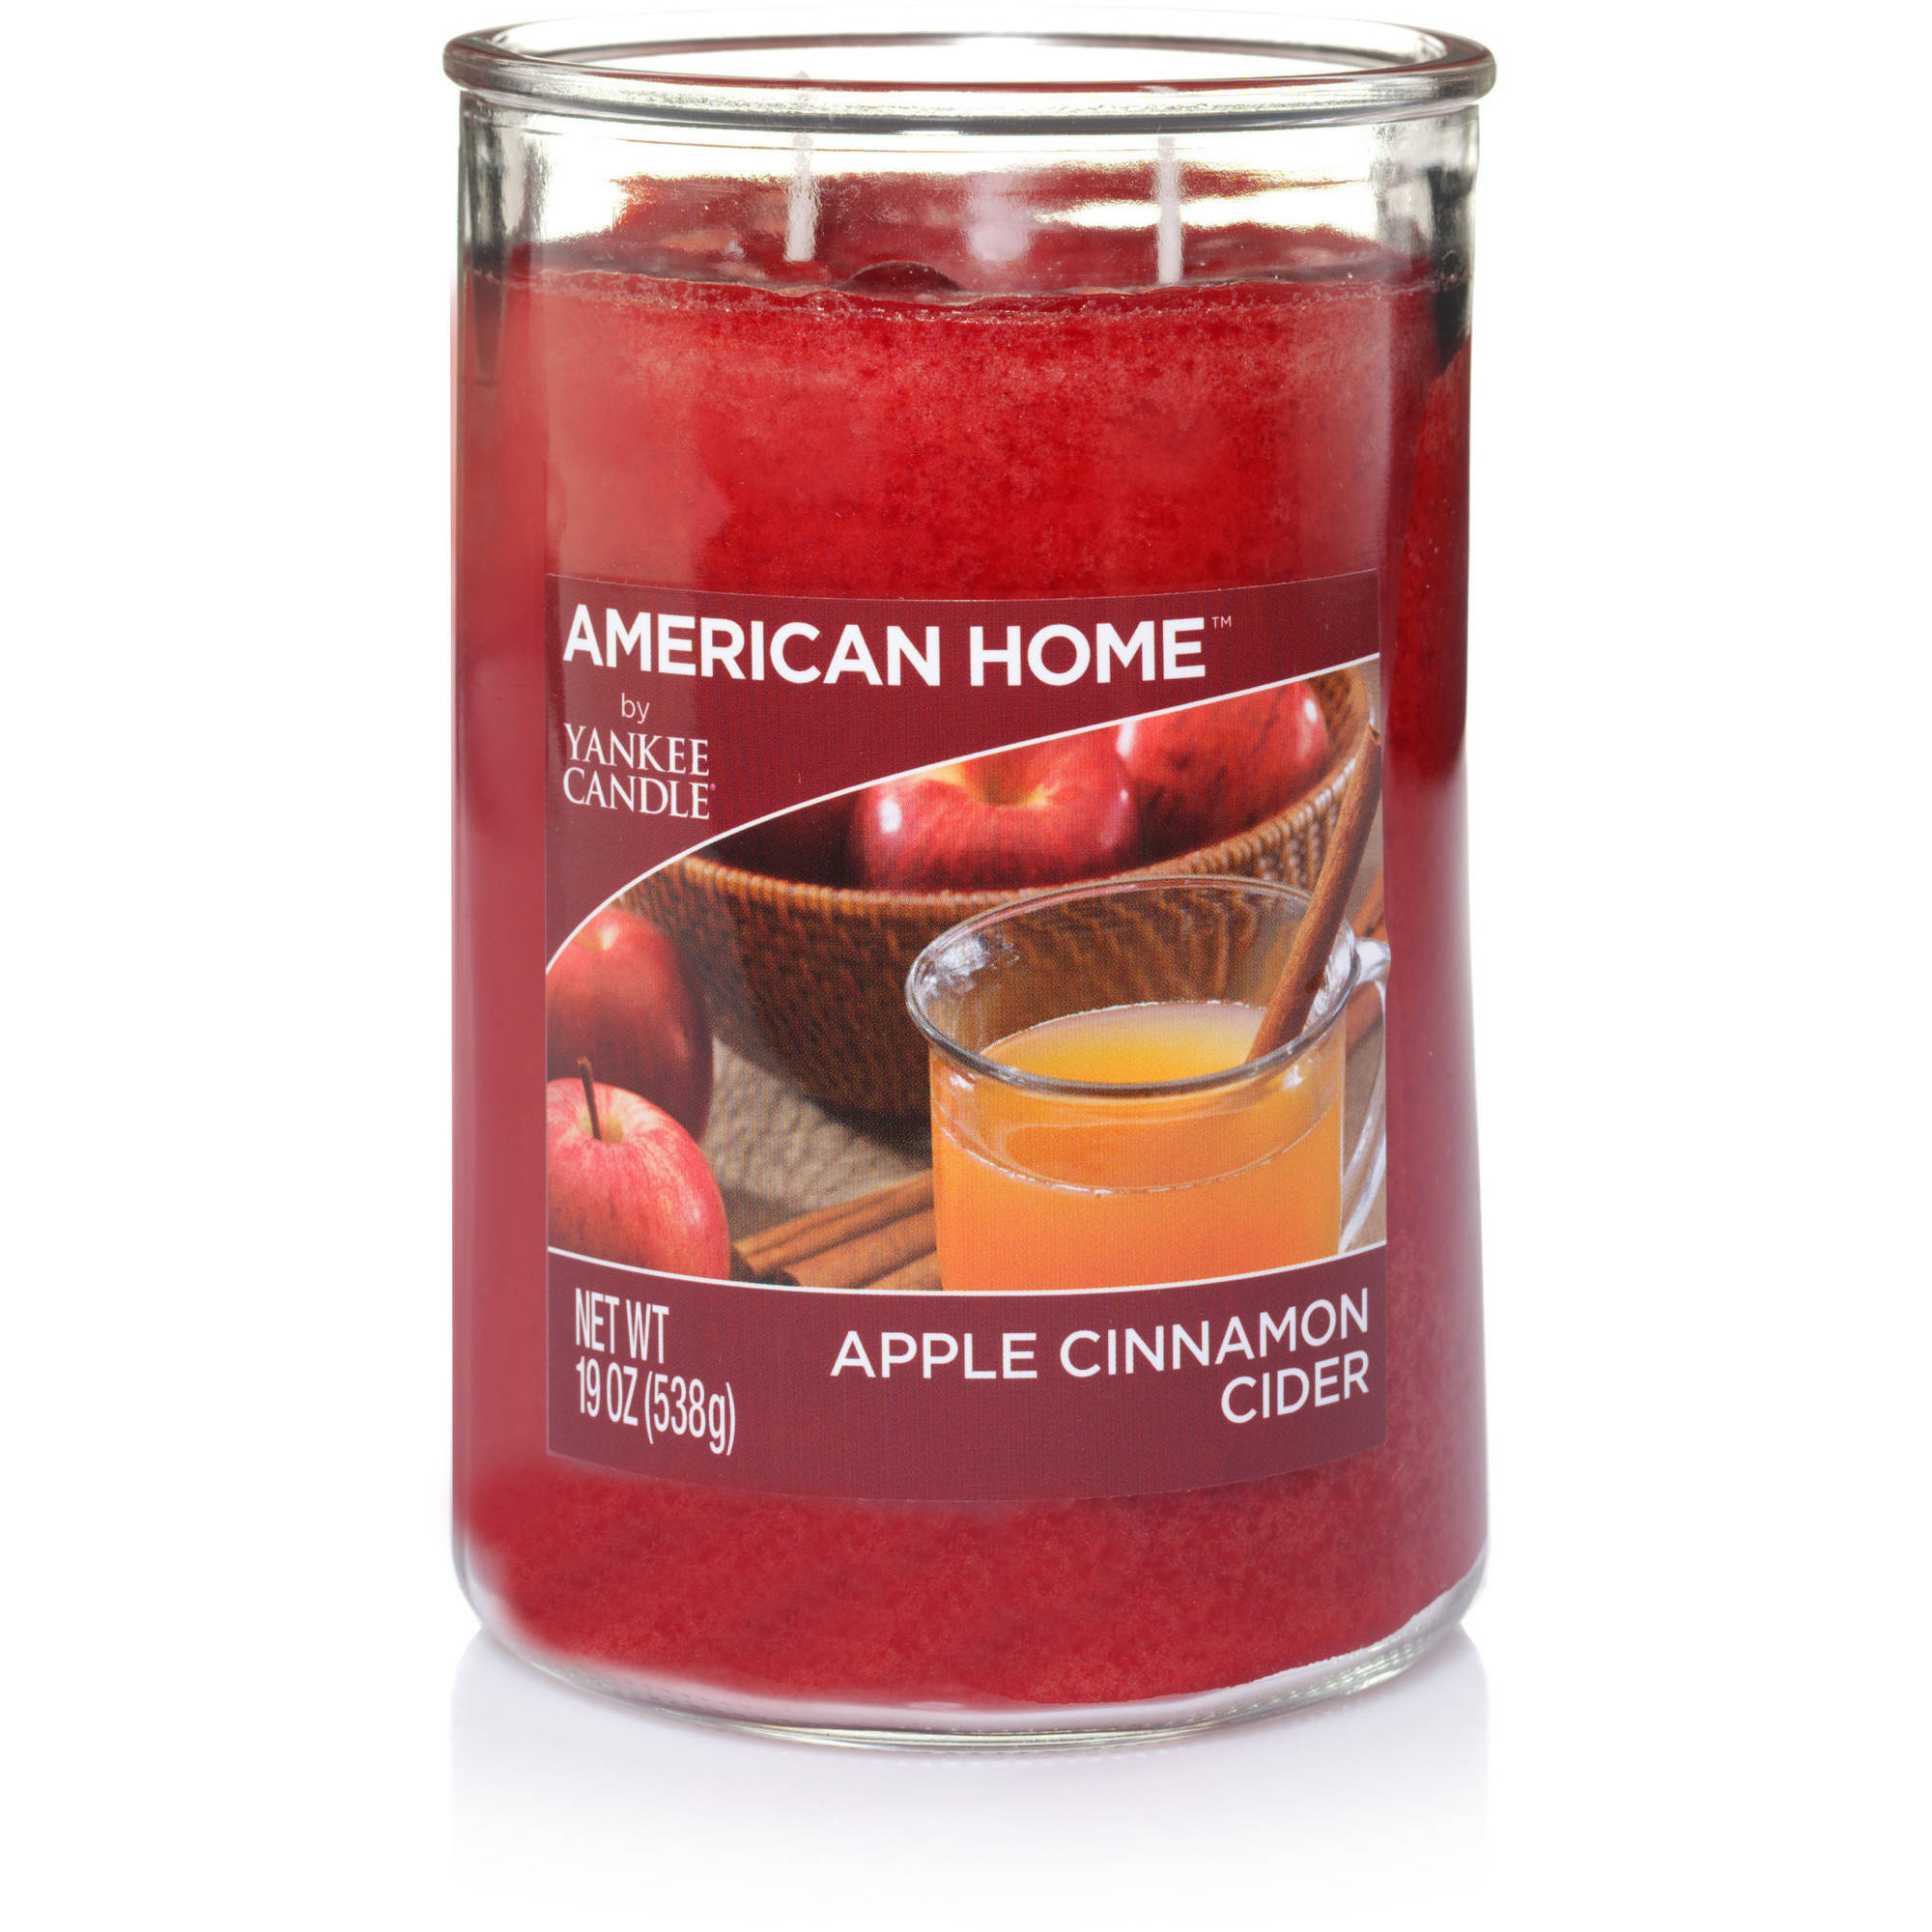 American Home Apple Cinnamon Cider